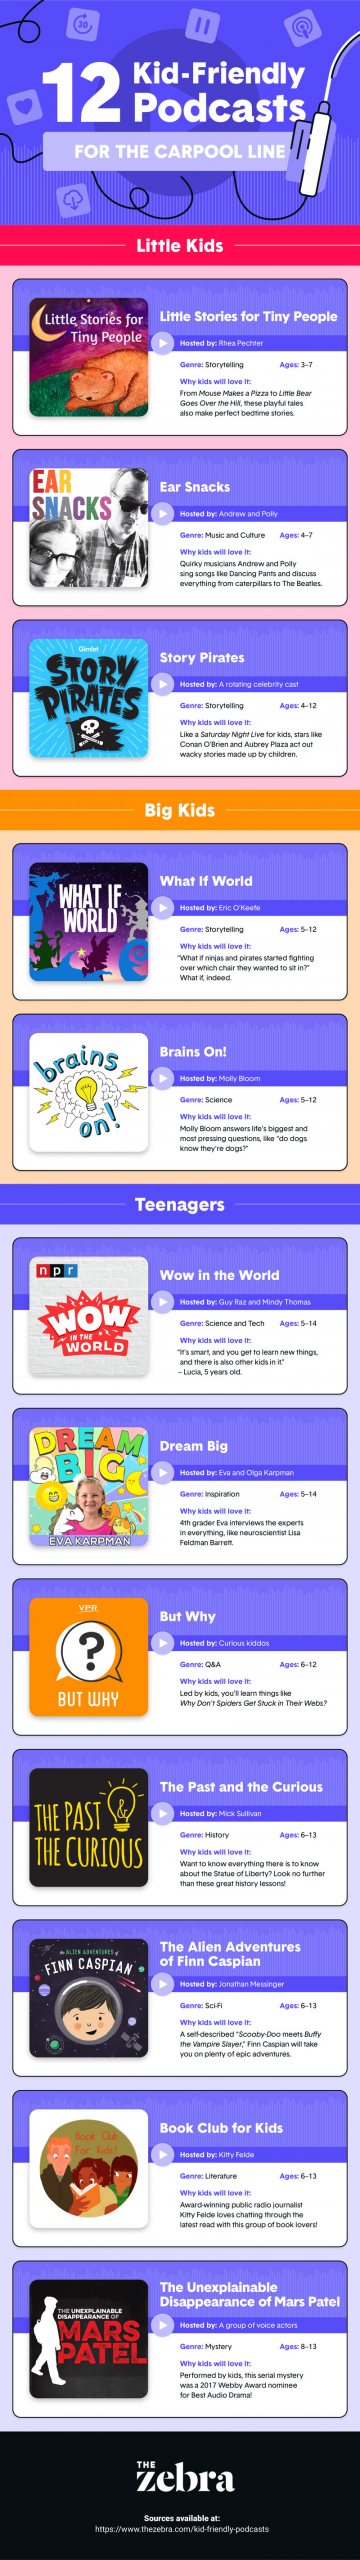 The Indoor Kids Podcast  Podcasts for kids Here's 12 perfect for car rides